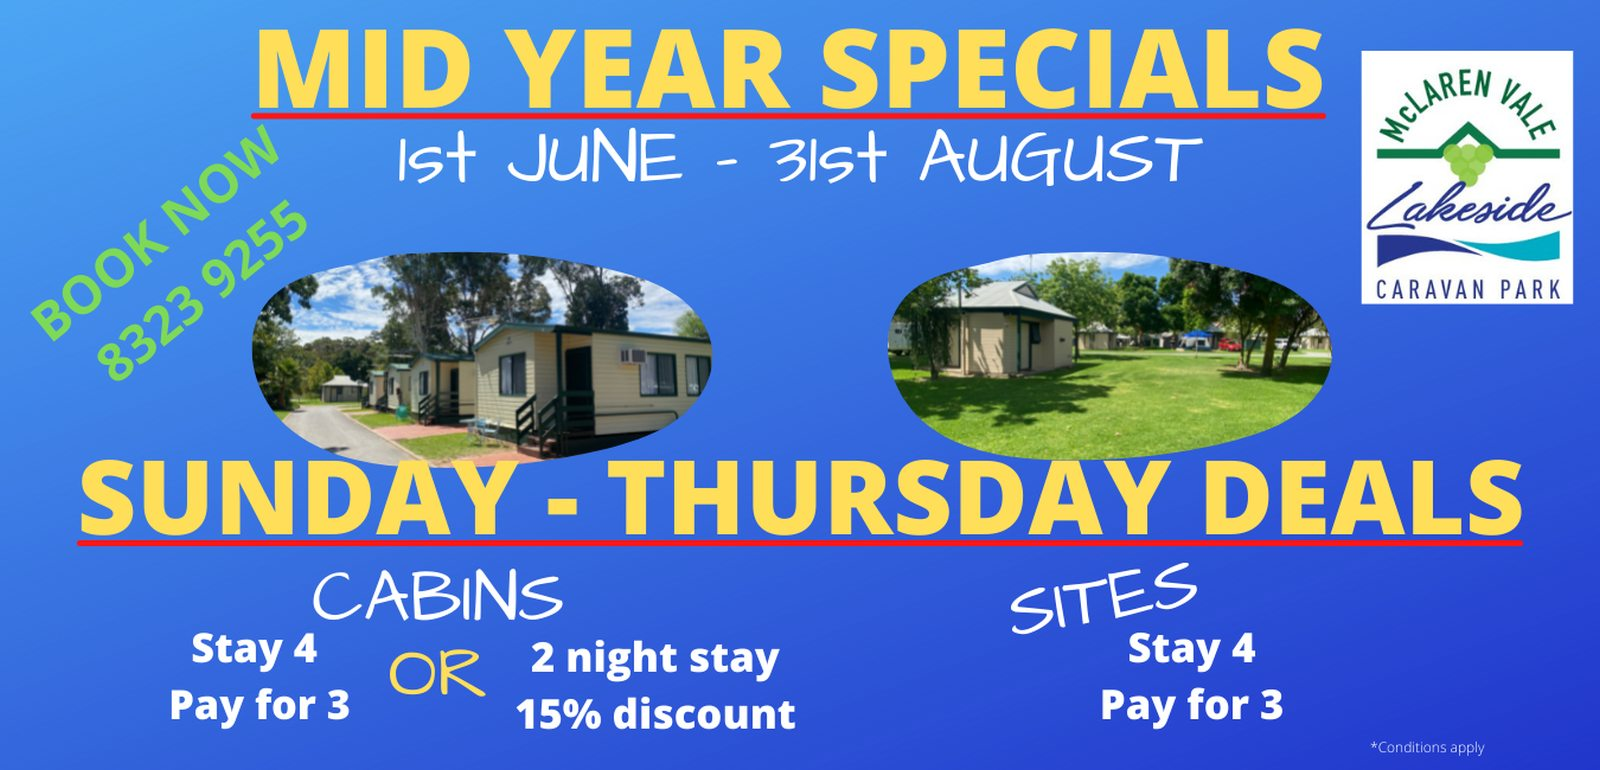 MID YEAR SPECIALS